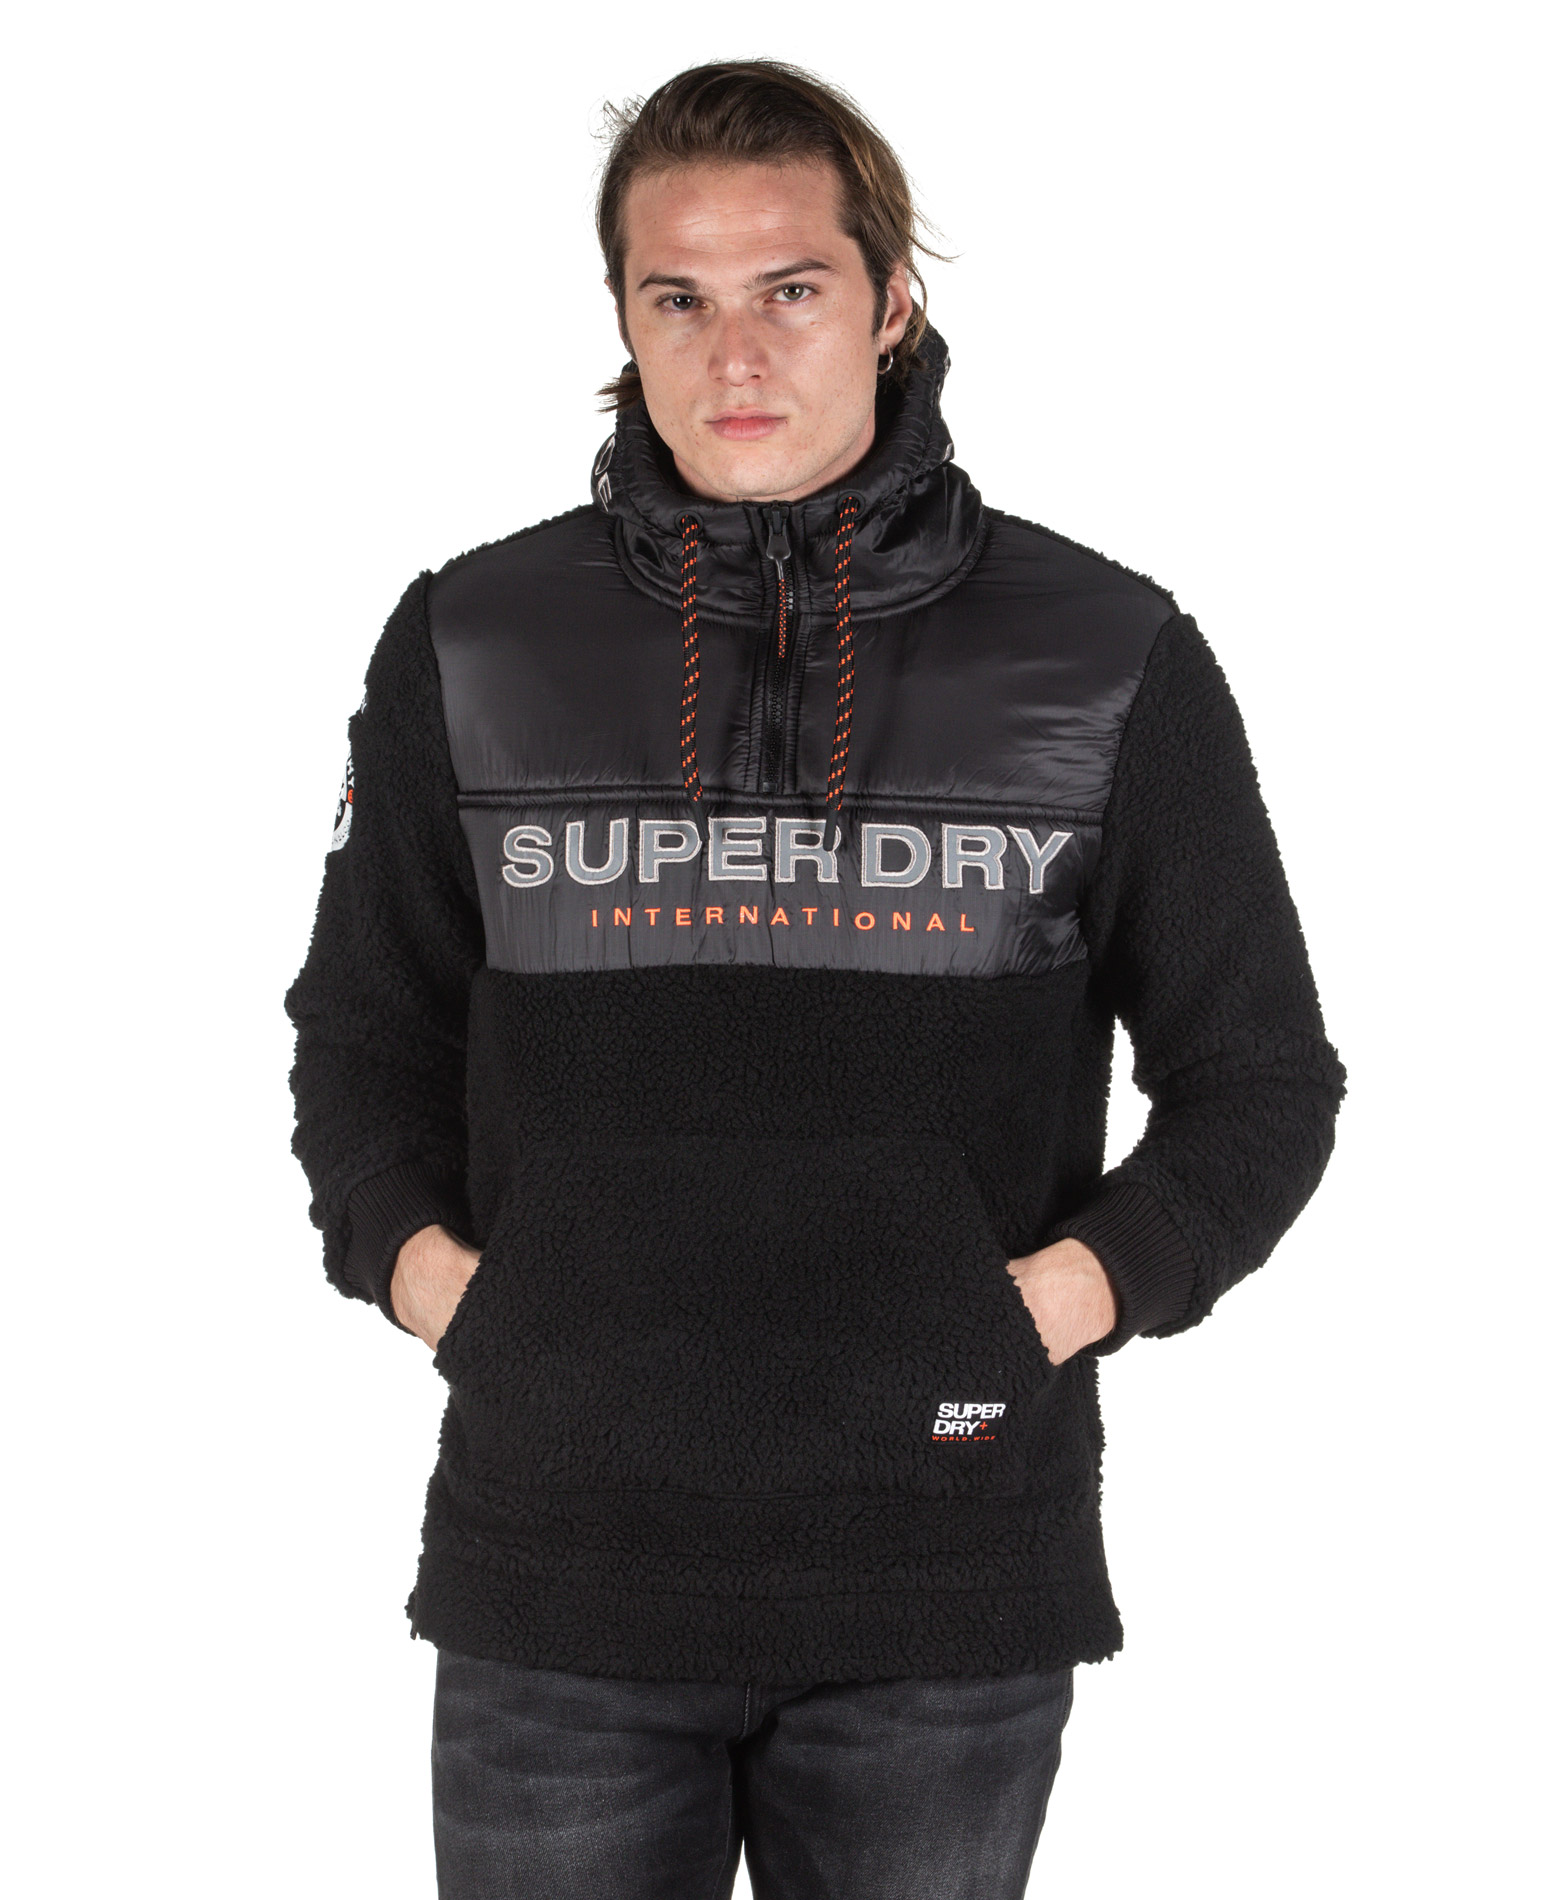 SUPERDRY SHERPA WORLDWIDE STEALTH HALF ZIPHOOD M2000037A-AZB Μαύρο